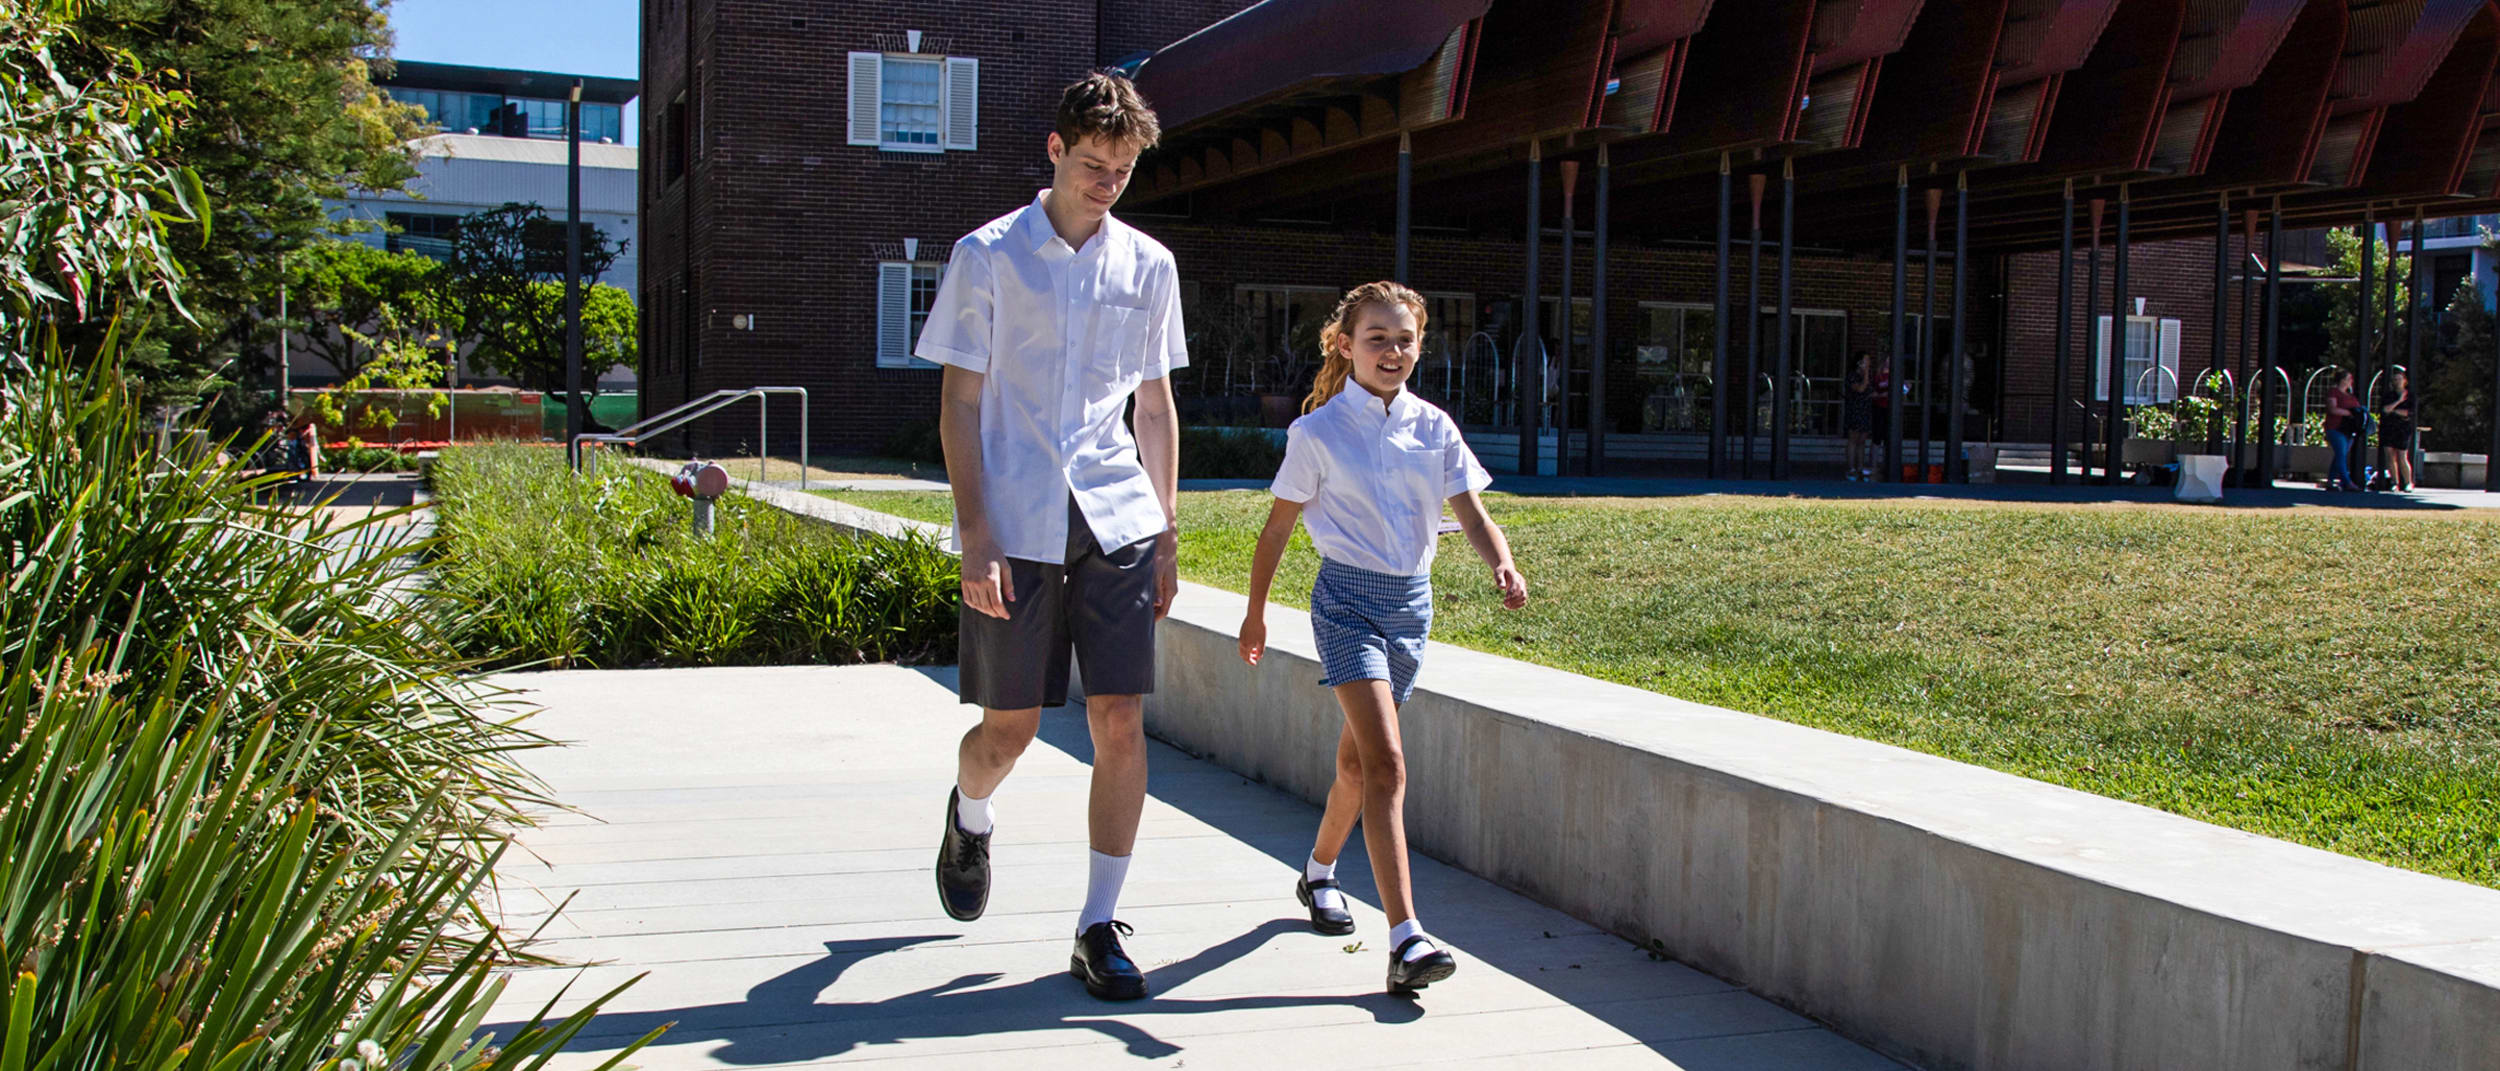 The Athlete's Foot: Back to school offer